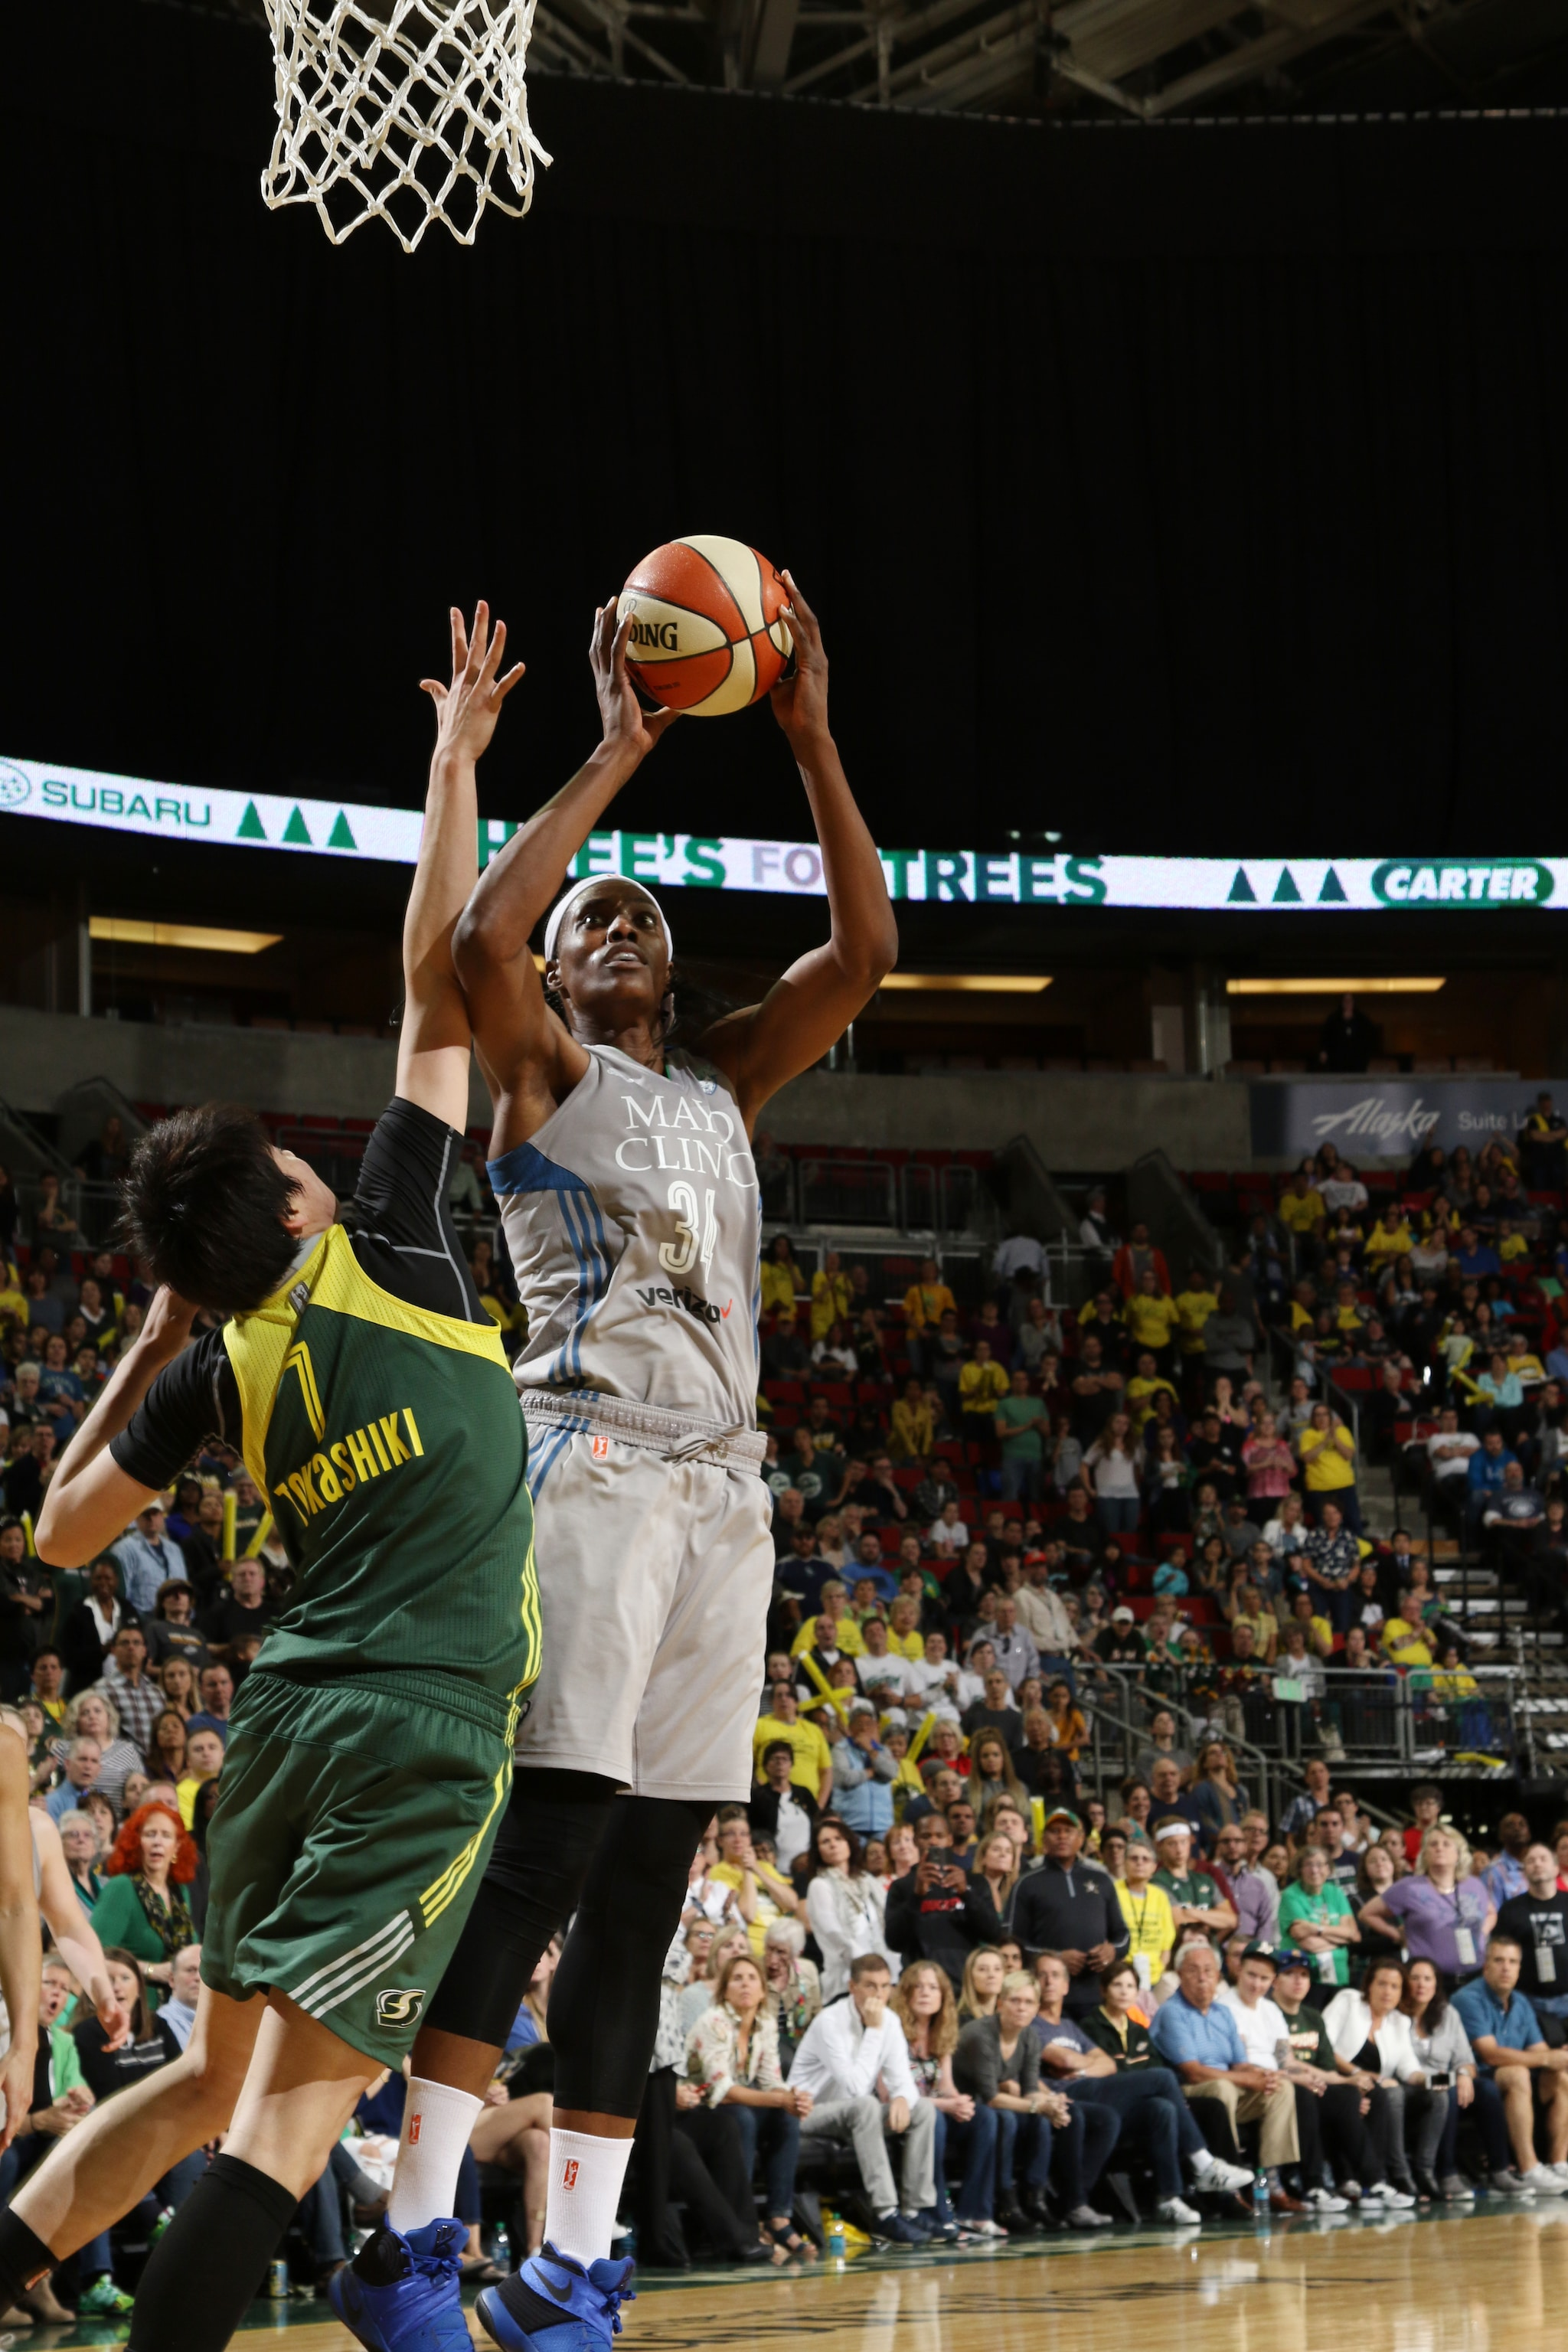 SEATTLE, WA - MAY 22:  Sylvia Fowles #34 of the Minnesota Lynx shoots the ball against the Seattle Storm on May 22, 2016 at KeyArena in Seattle, Washington. NOTE TO USER: User expressly acknowledges and agrees that, by downloading and or using this photograph, user is consenting to the terms and conditions of Getty Images License Agreement. Mandatory Copyright Notice: Copyright 2016 NBAE (Photo by Josh Huston/NBAE via Getty Images)